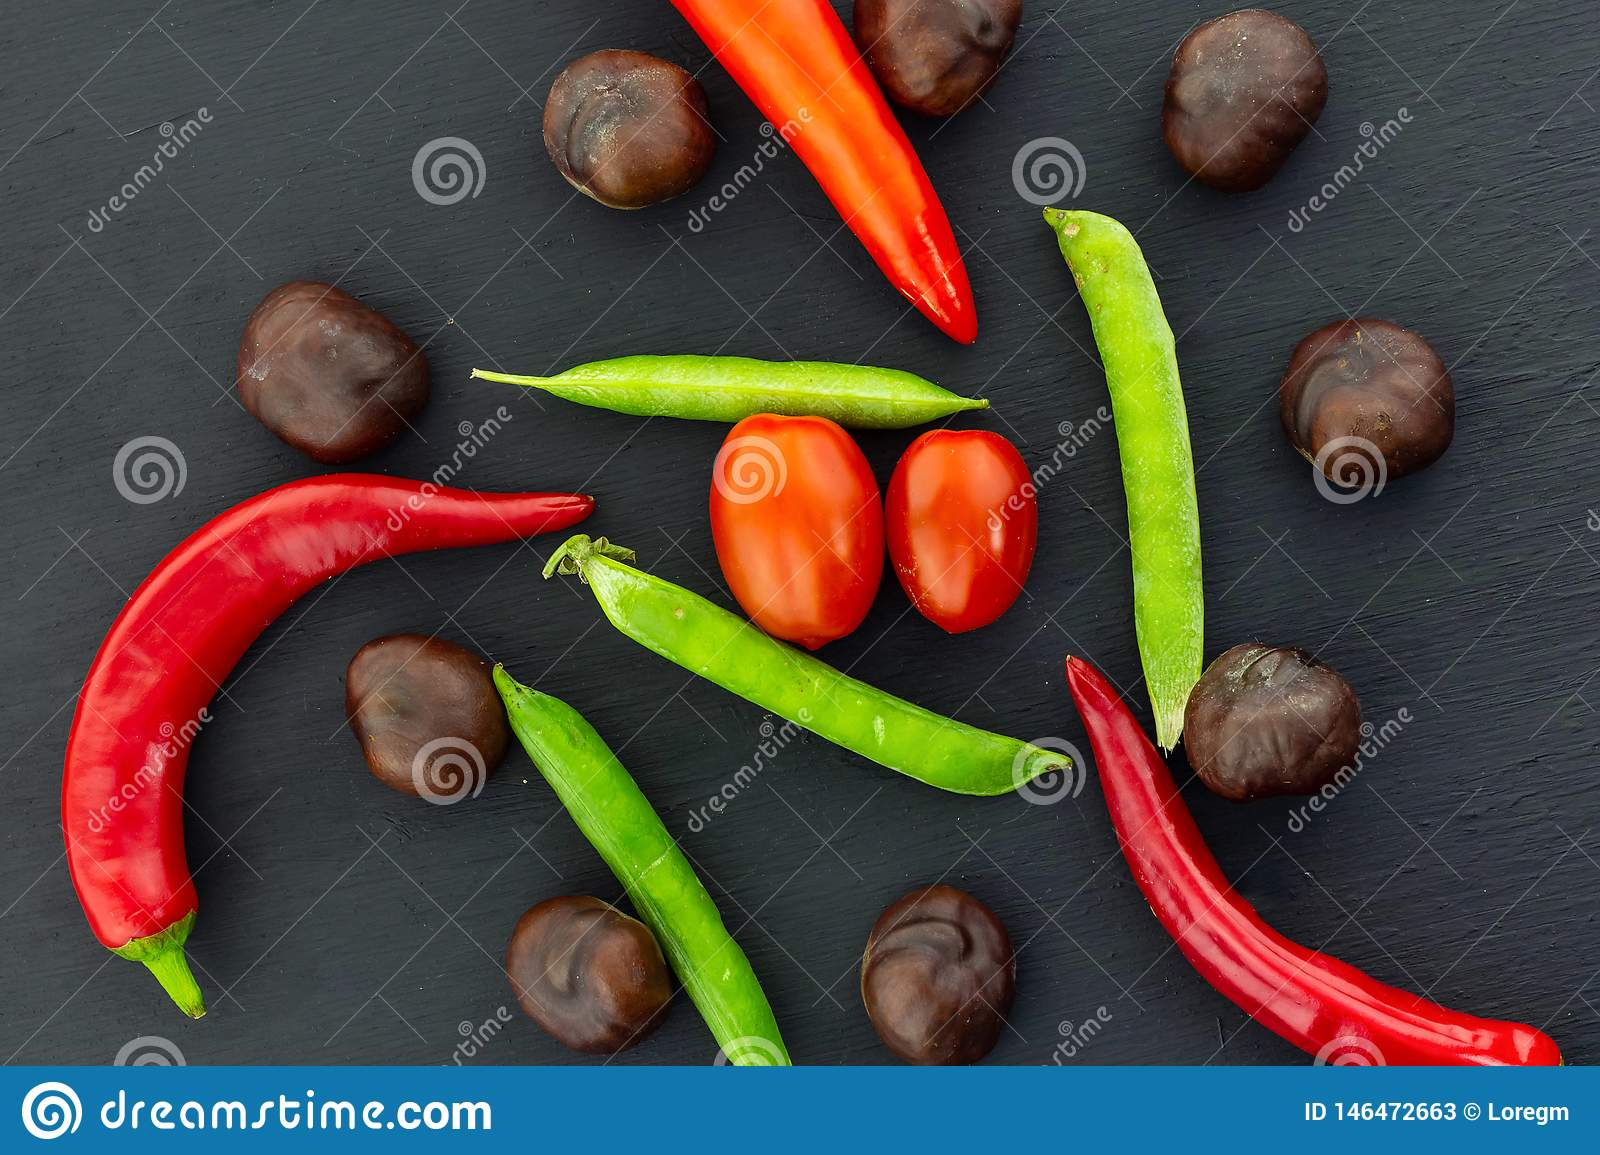 Autumn set pod pea pod pepper red mature brown fruit chestnut tomatoes cherry mix vegetable